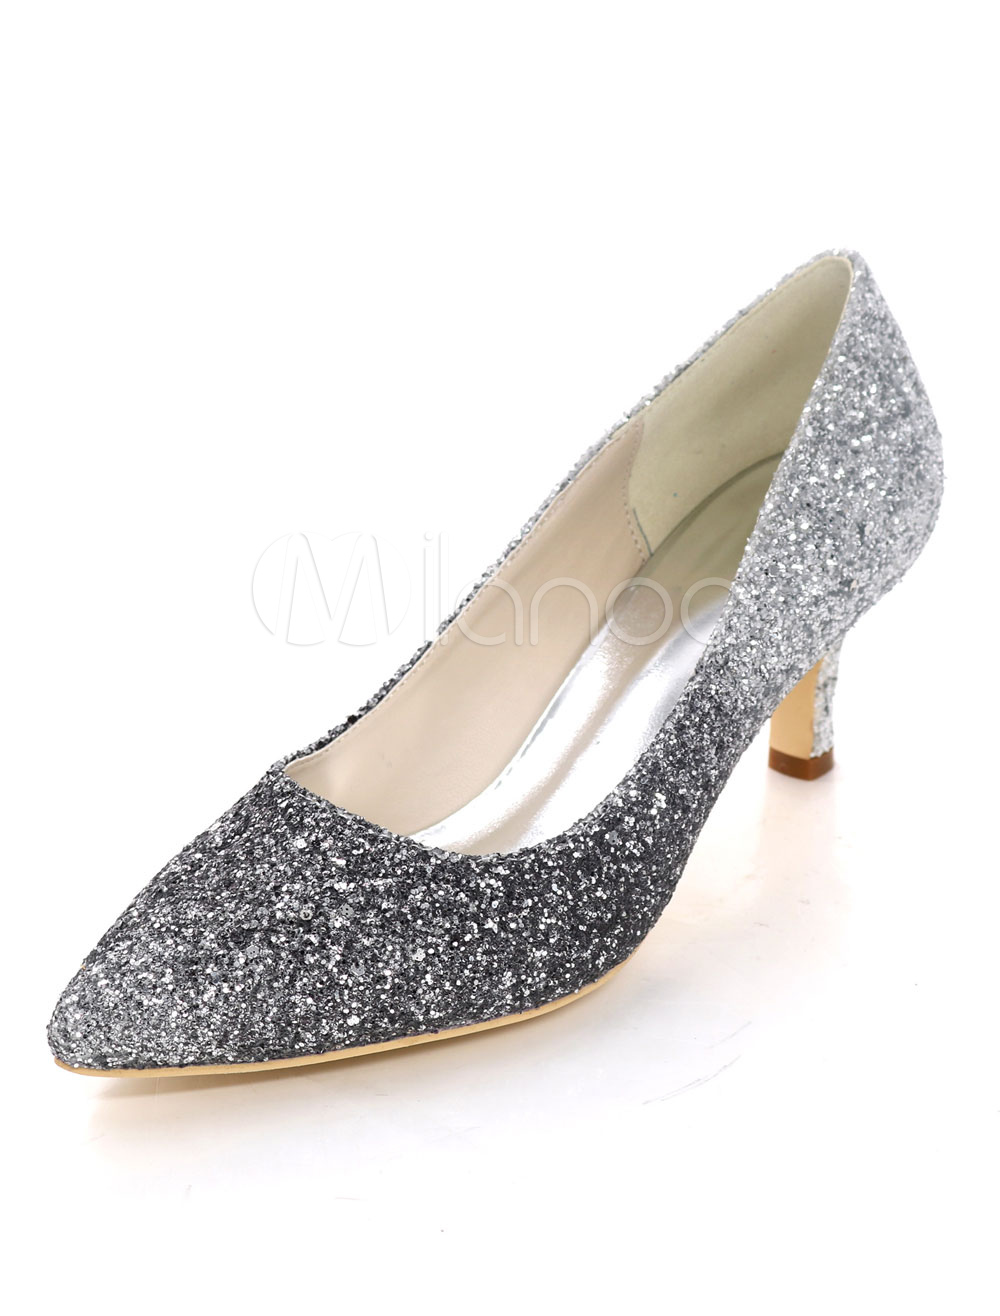 Kitten Heel Pumps Sequined Pointed Toe Slip On Pumps Women Dress Shoes